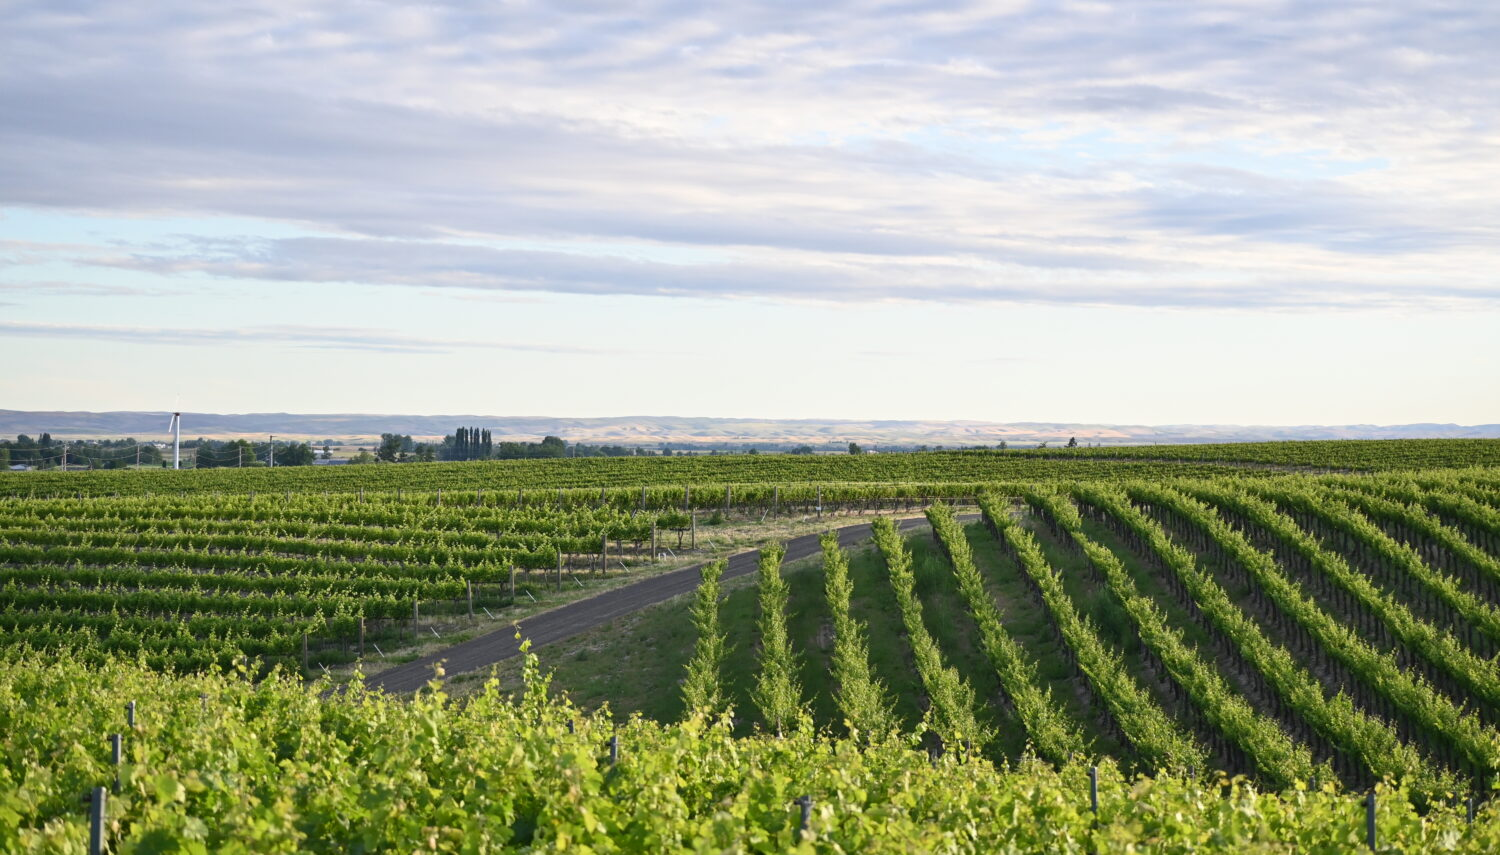 Green rows of grape vines in alternating directions with a dirt road cutting through the vines. The sky is light blue with an even layer of light clouds.